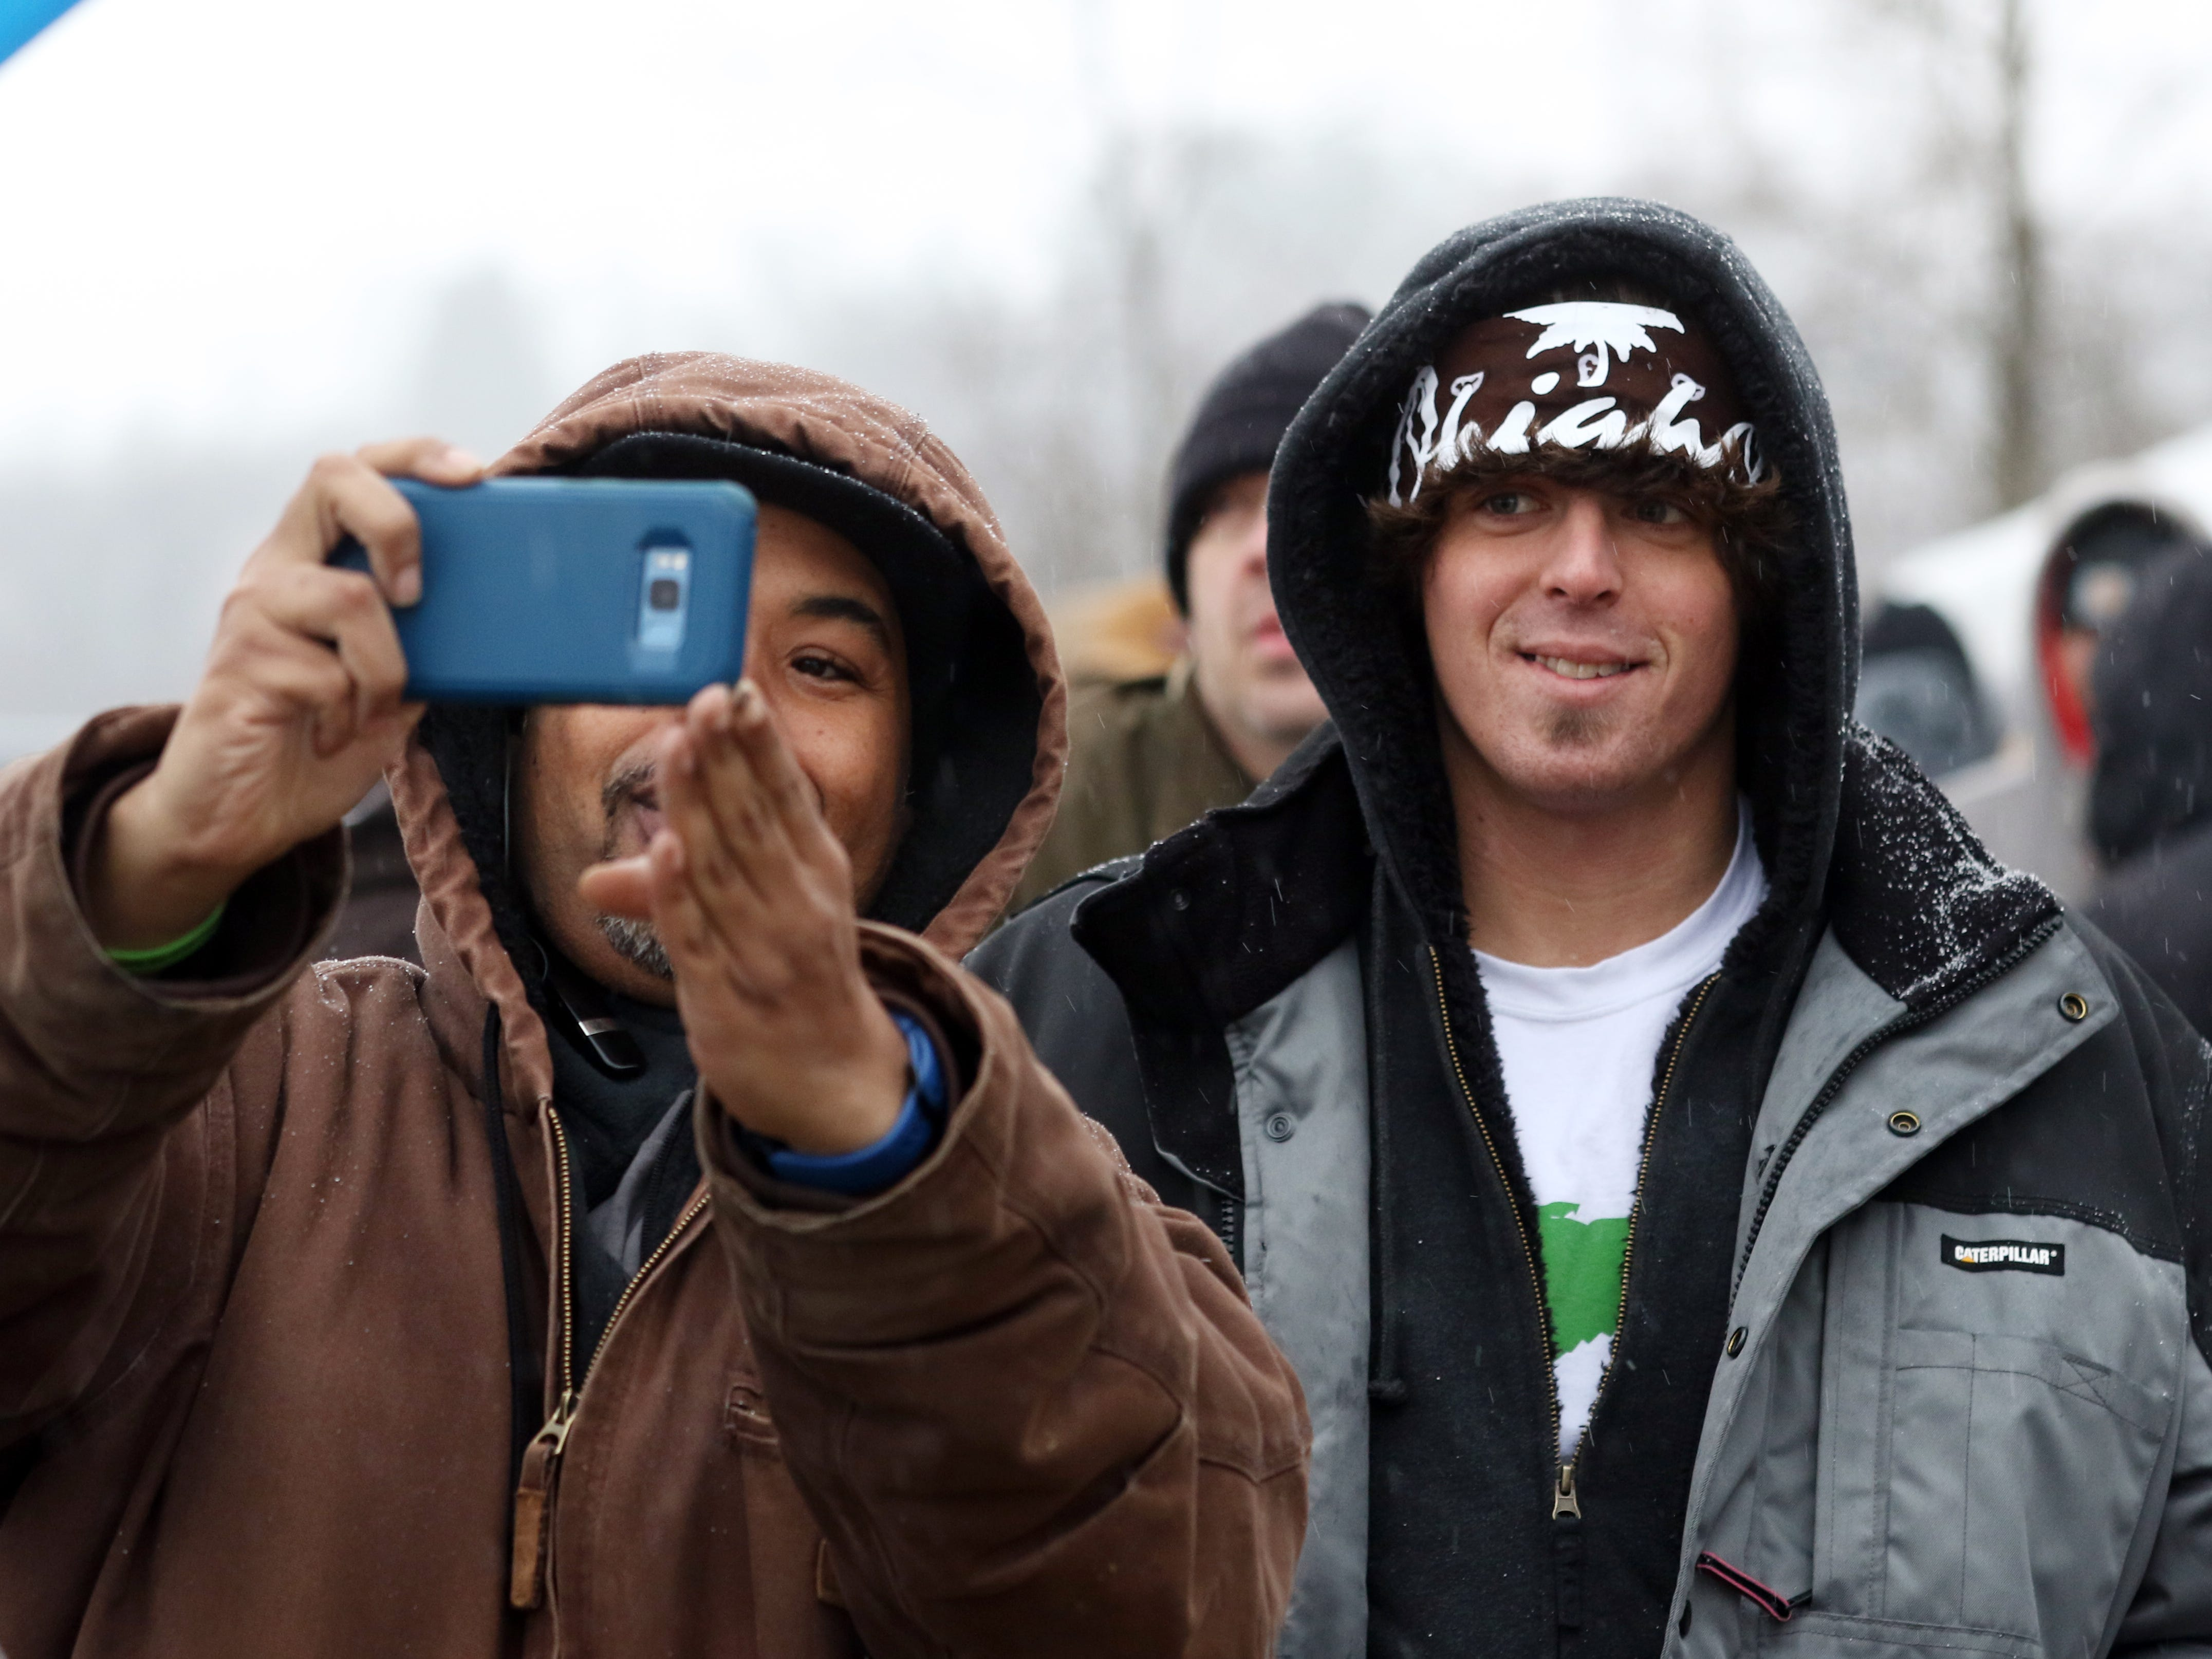 Anthony Riley, left, of Columbus, takes a selfie with Sterling Strout of Dayton while waiting in line outside CY+ Wintersville Dispensary on Wednesday. The dispensary was one of the first in the state to sell medical marijuana.